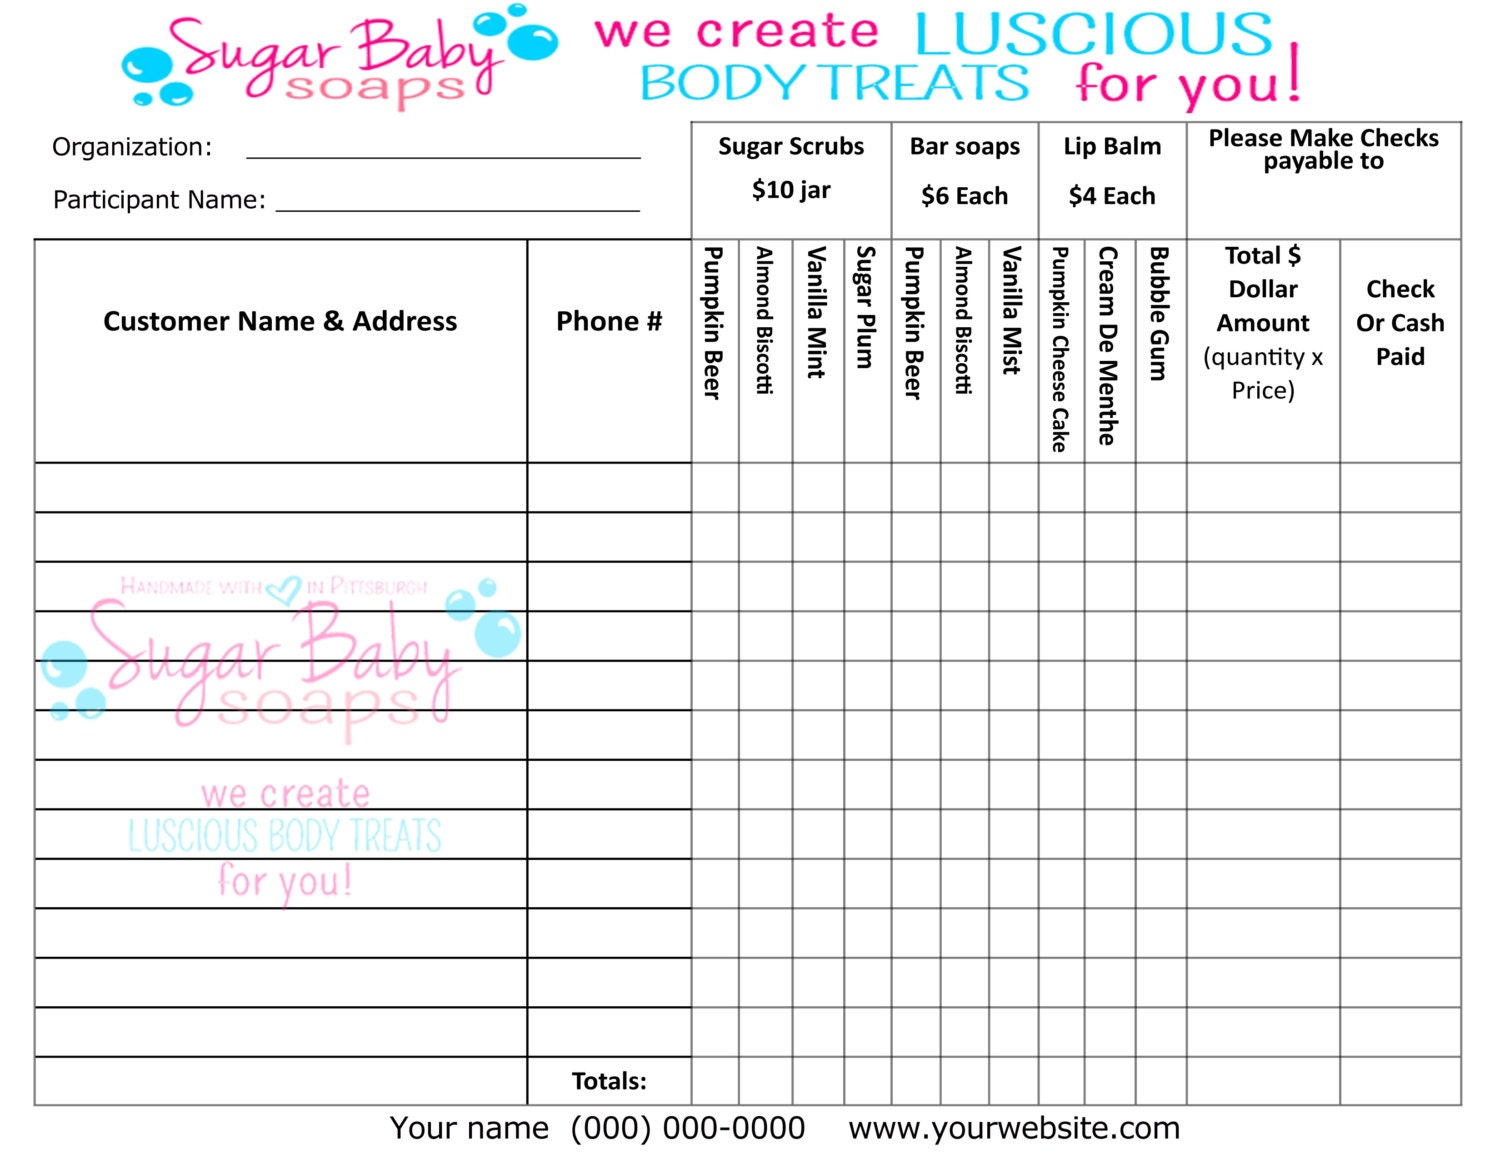 Customized Fundraiser order formdigital file onlycustomize